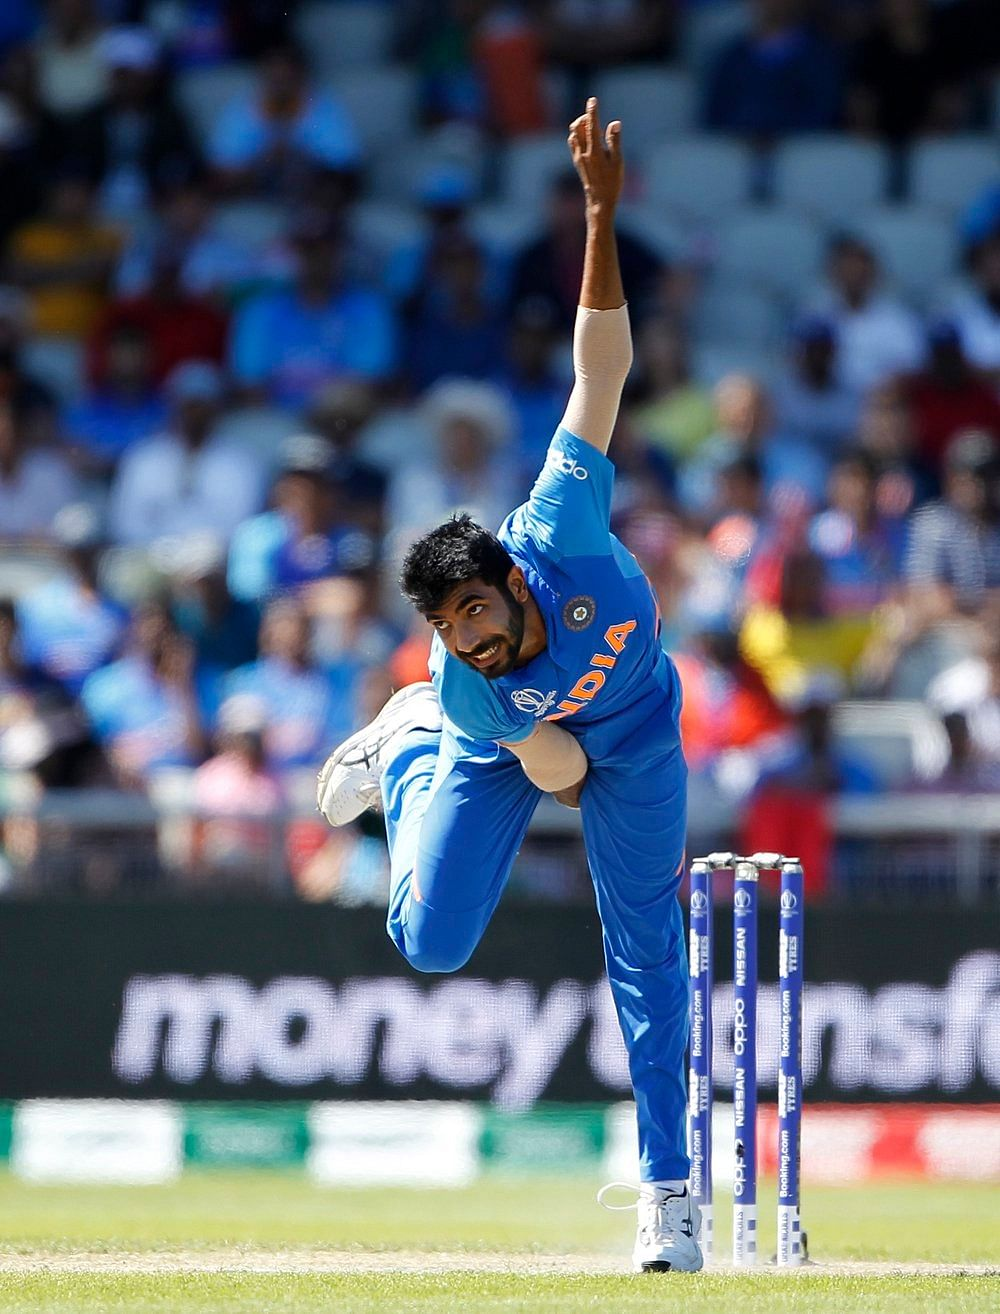 Indian bowler Jasprit Bumrah bowls during a match against West Indies